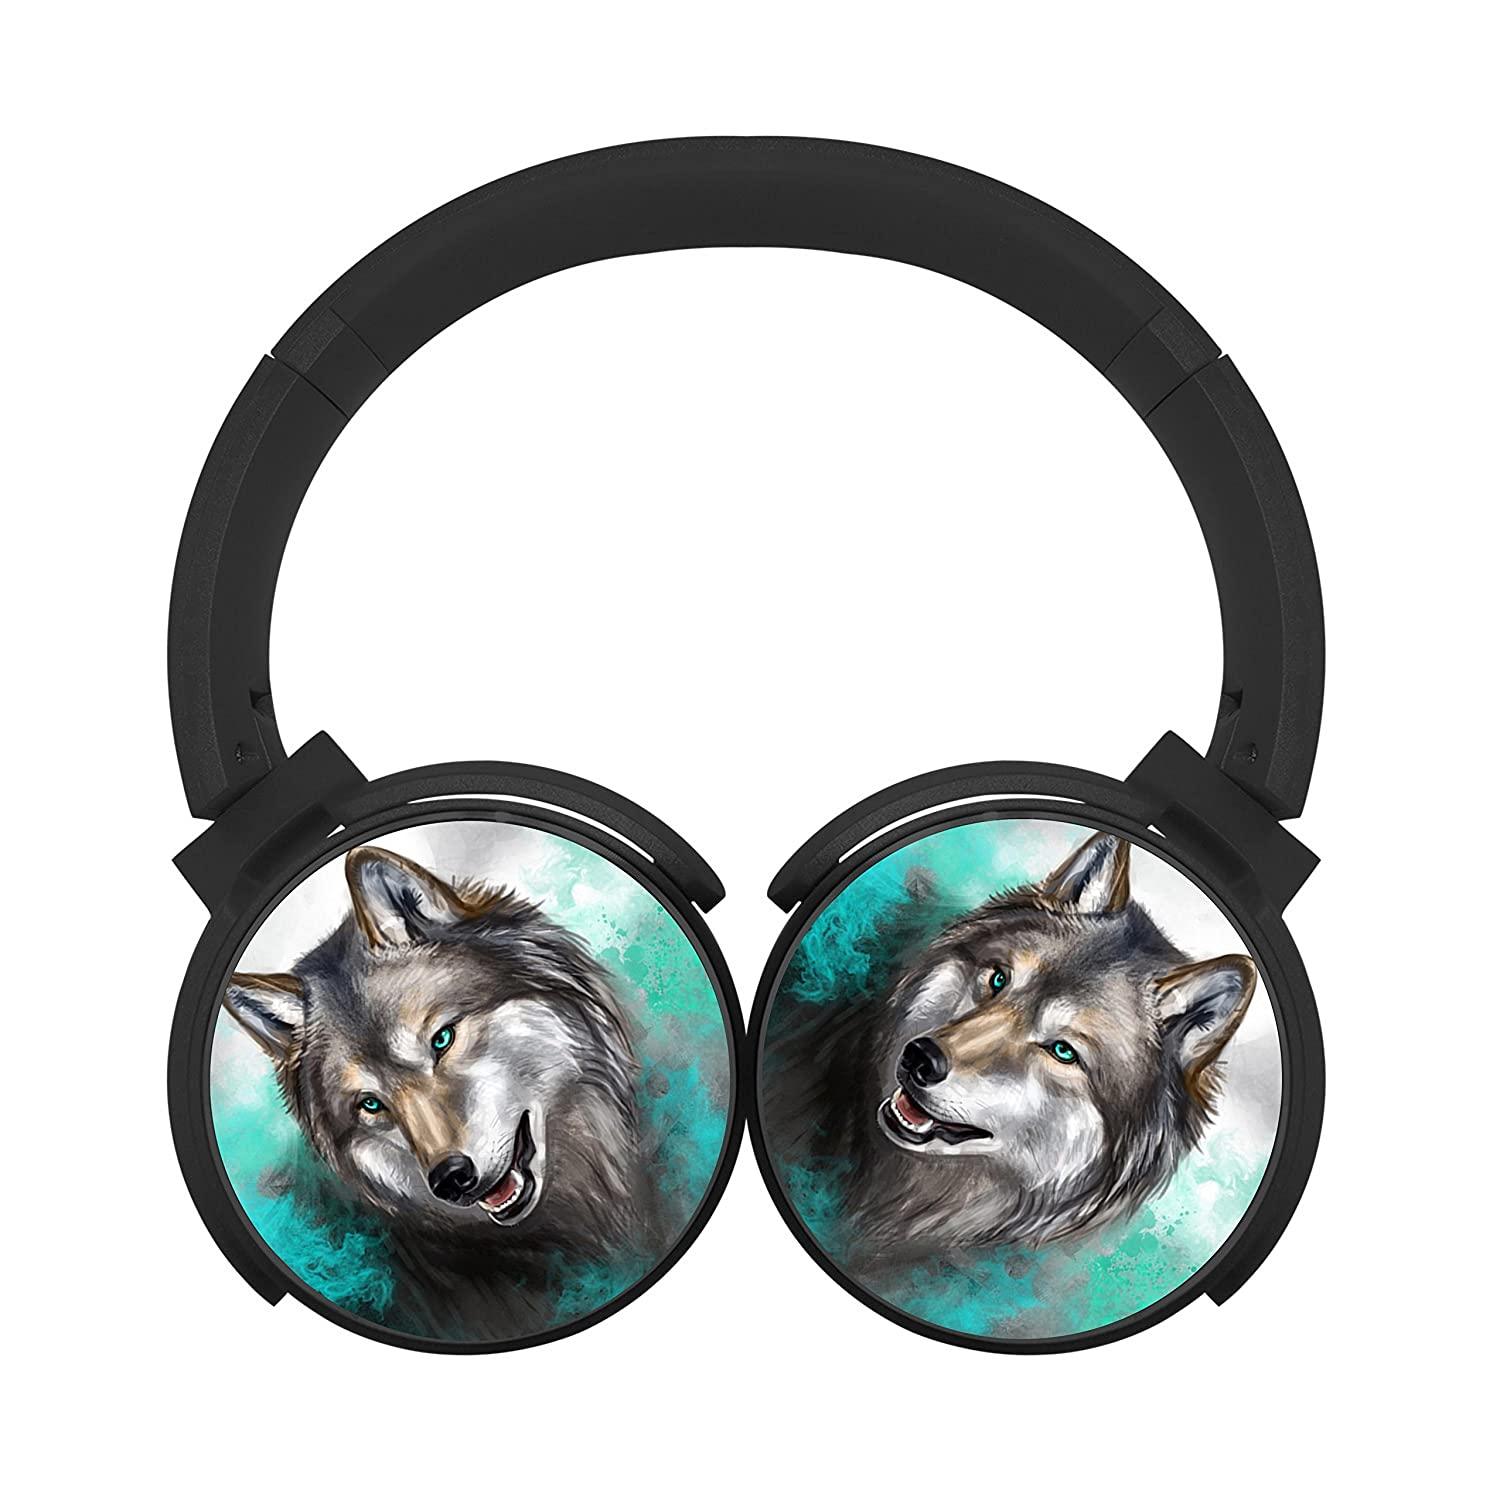 Turquoise Wolf Mobile Wireless Bluetooth Customized Over Ear Headphones Black